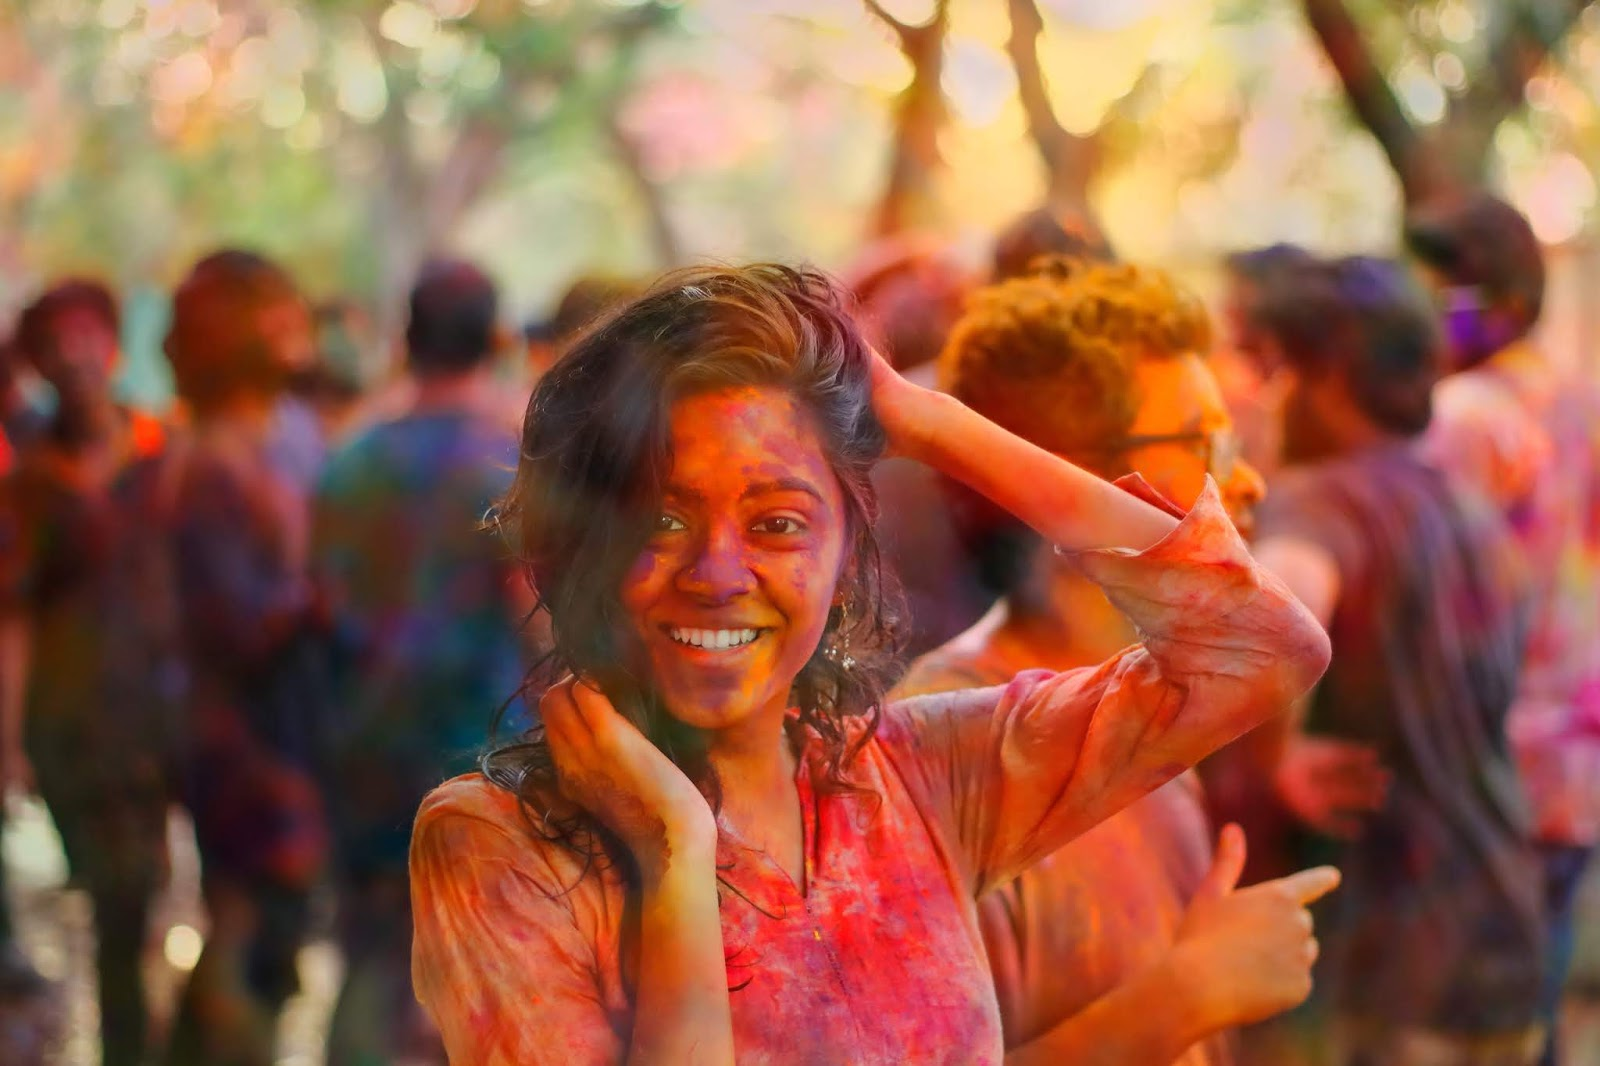 shubham sharma 224917 unsplash - Happy Holi Shayari 2019